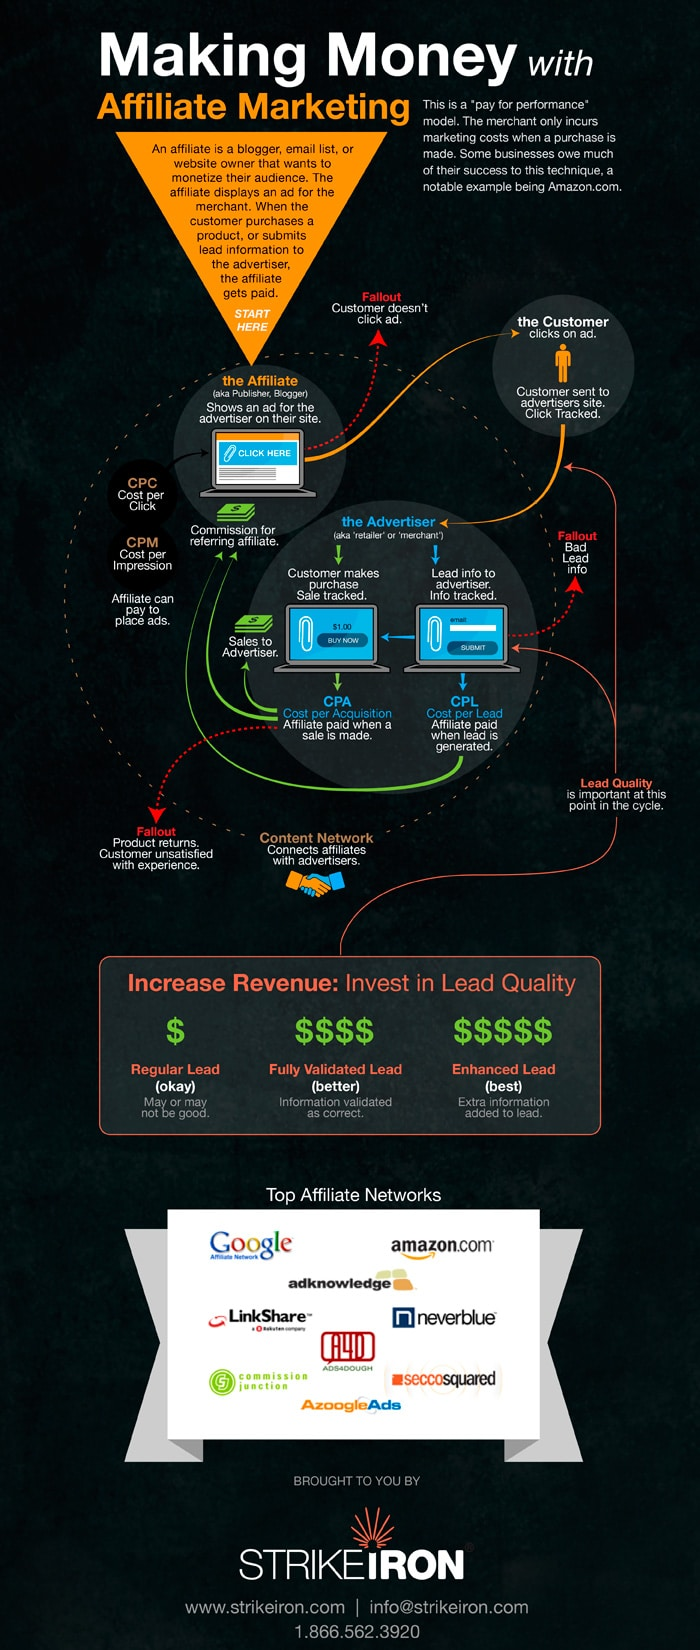 How To Make Money With Affiliate Marketing [Infographic]